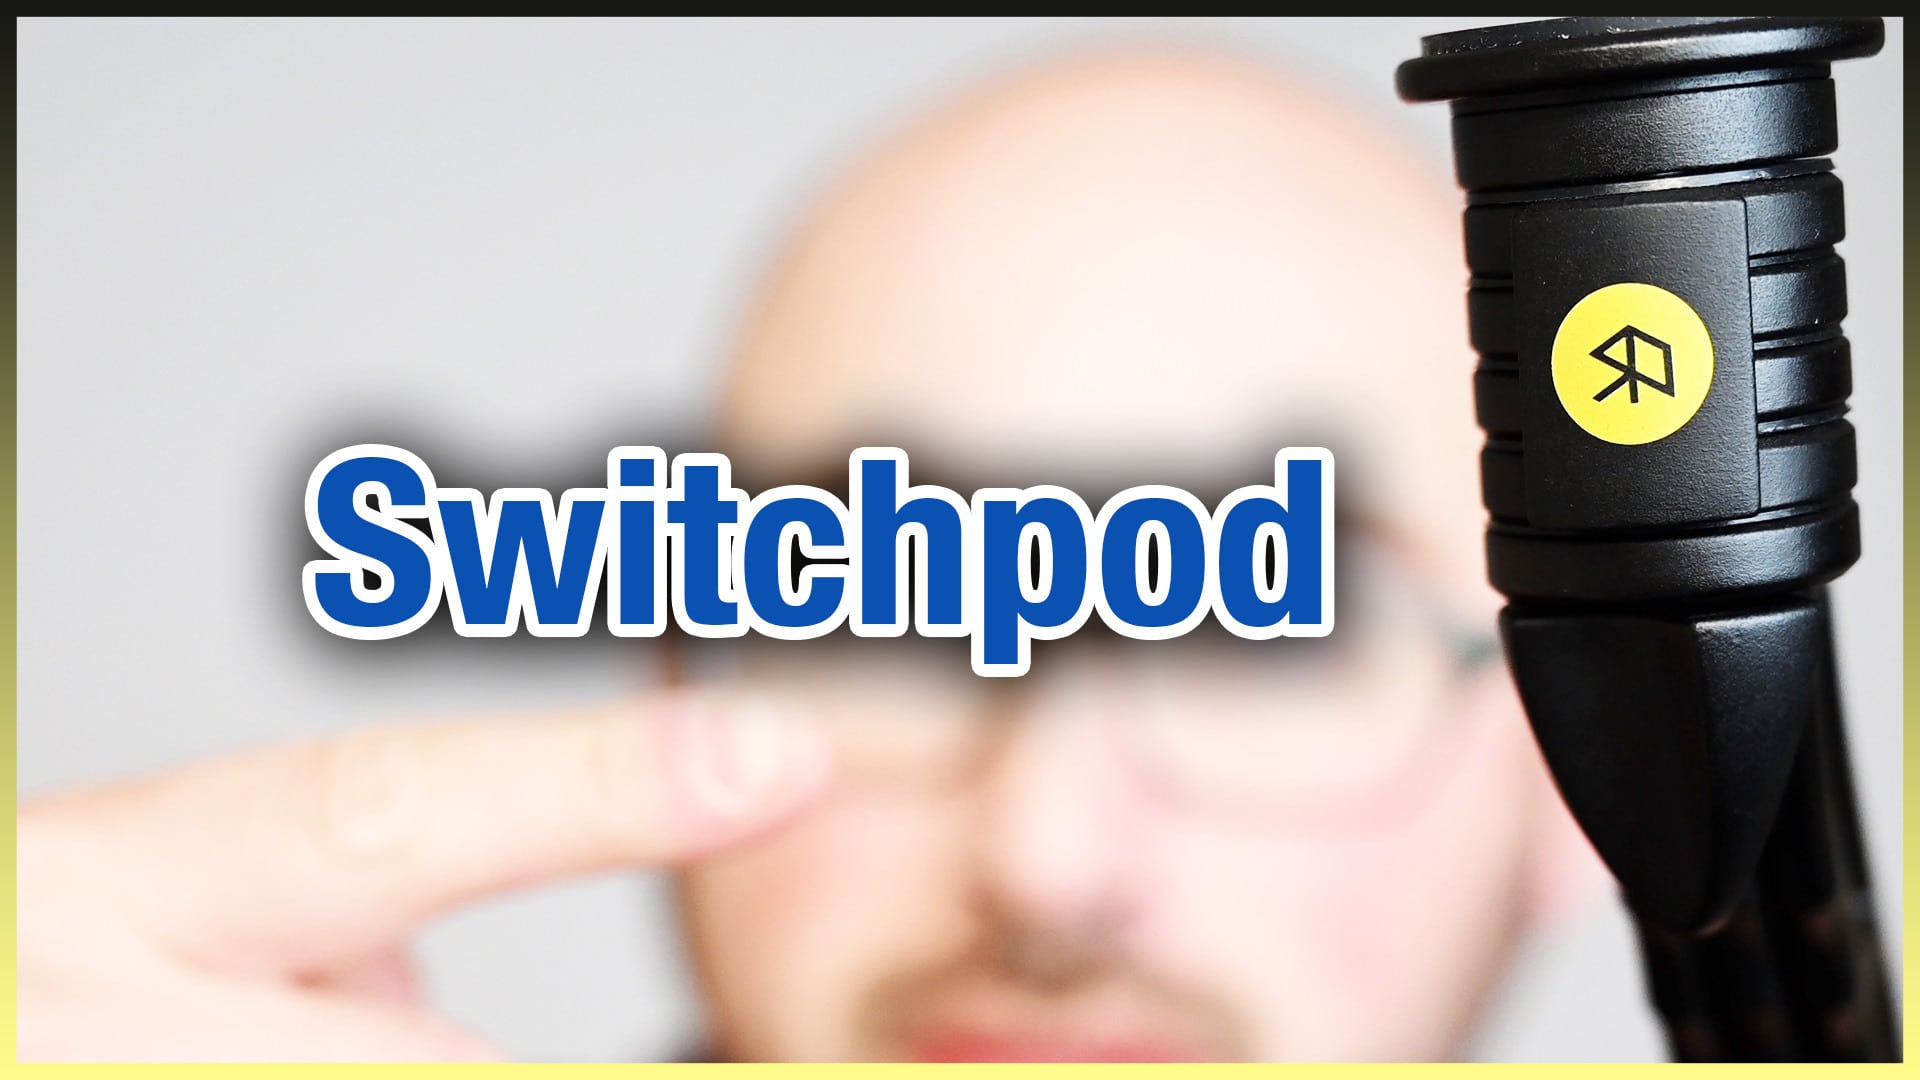 Switchpod Review – Better than a GorillaPod?